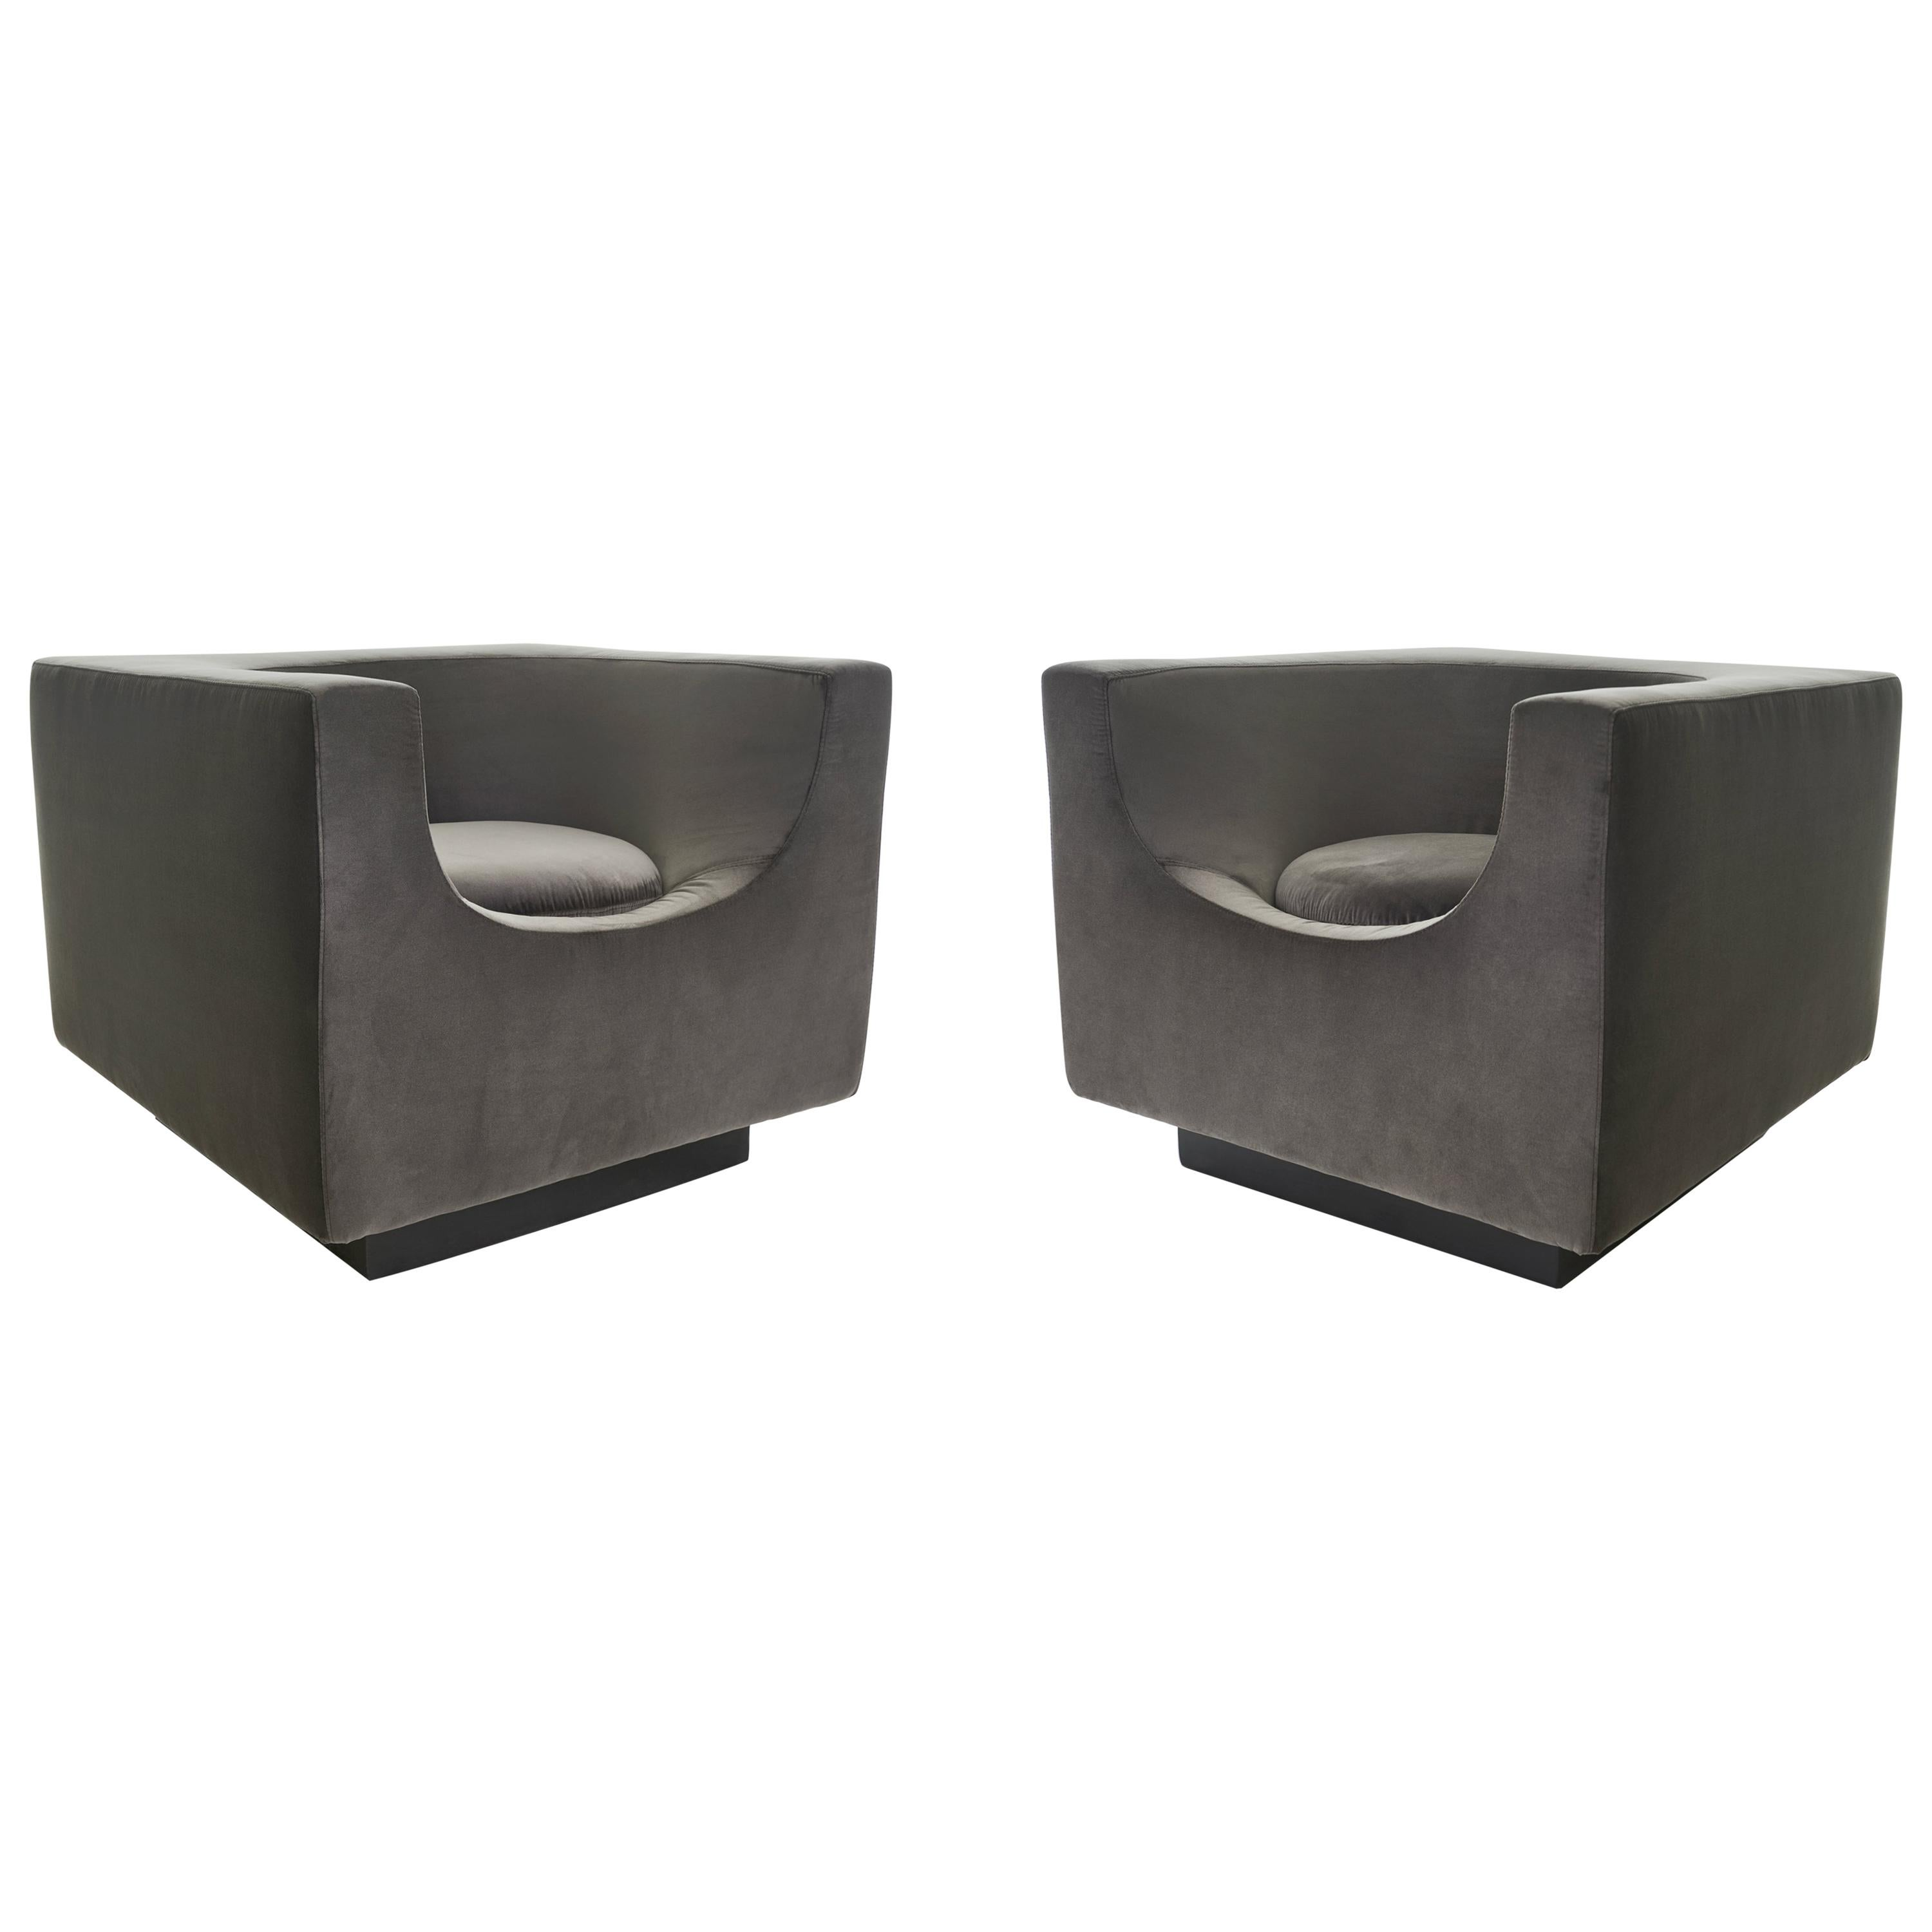 Exclusive Bernard Govin for Saporiti Luxe 1970s 'Cube' Armchair Pair